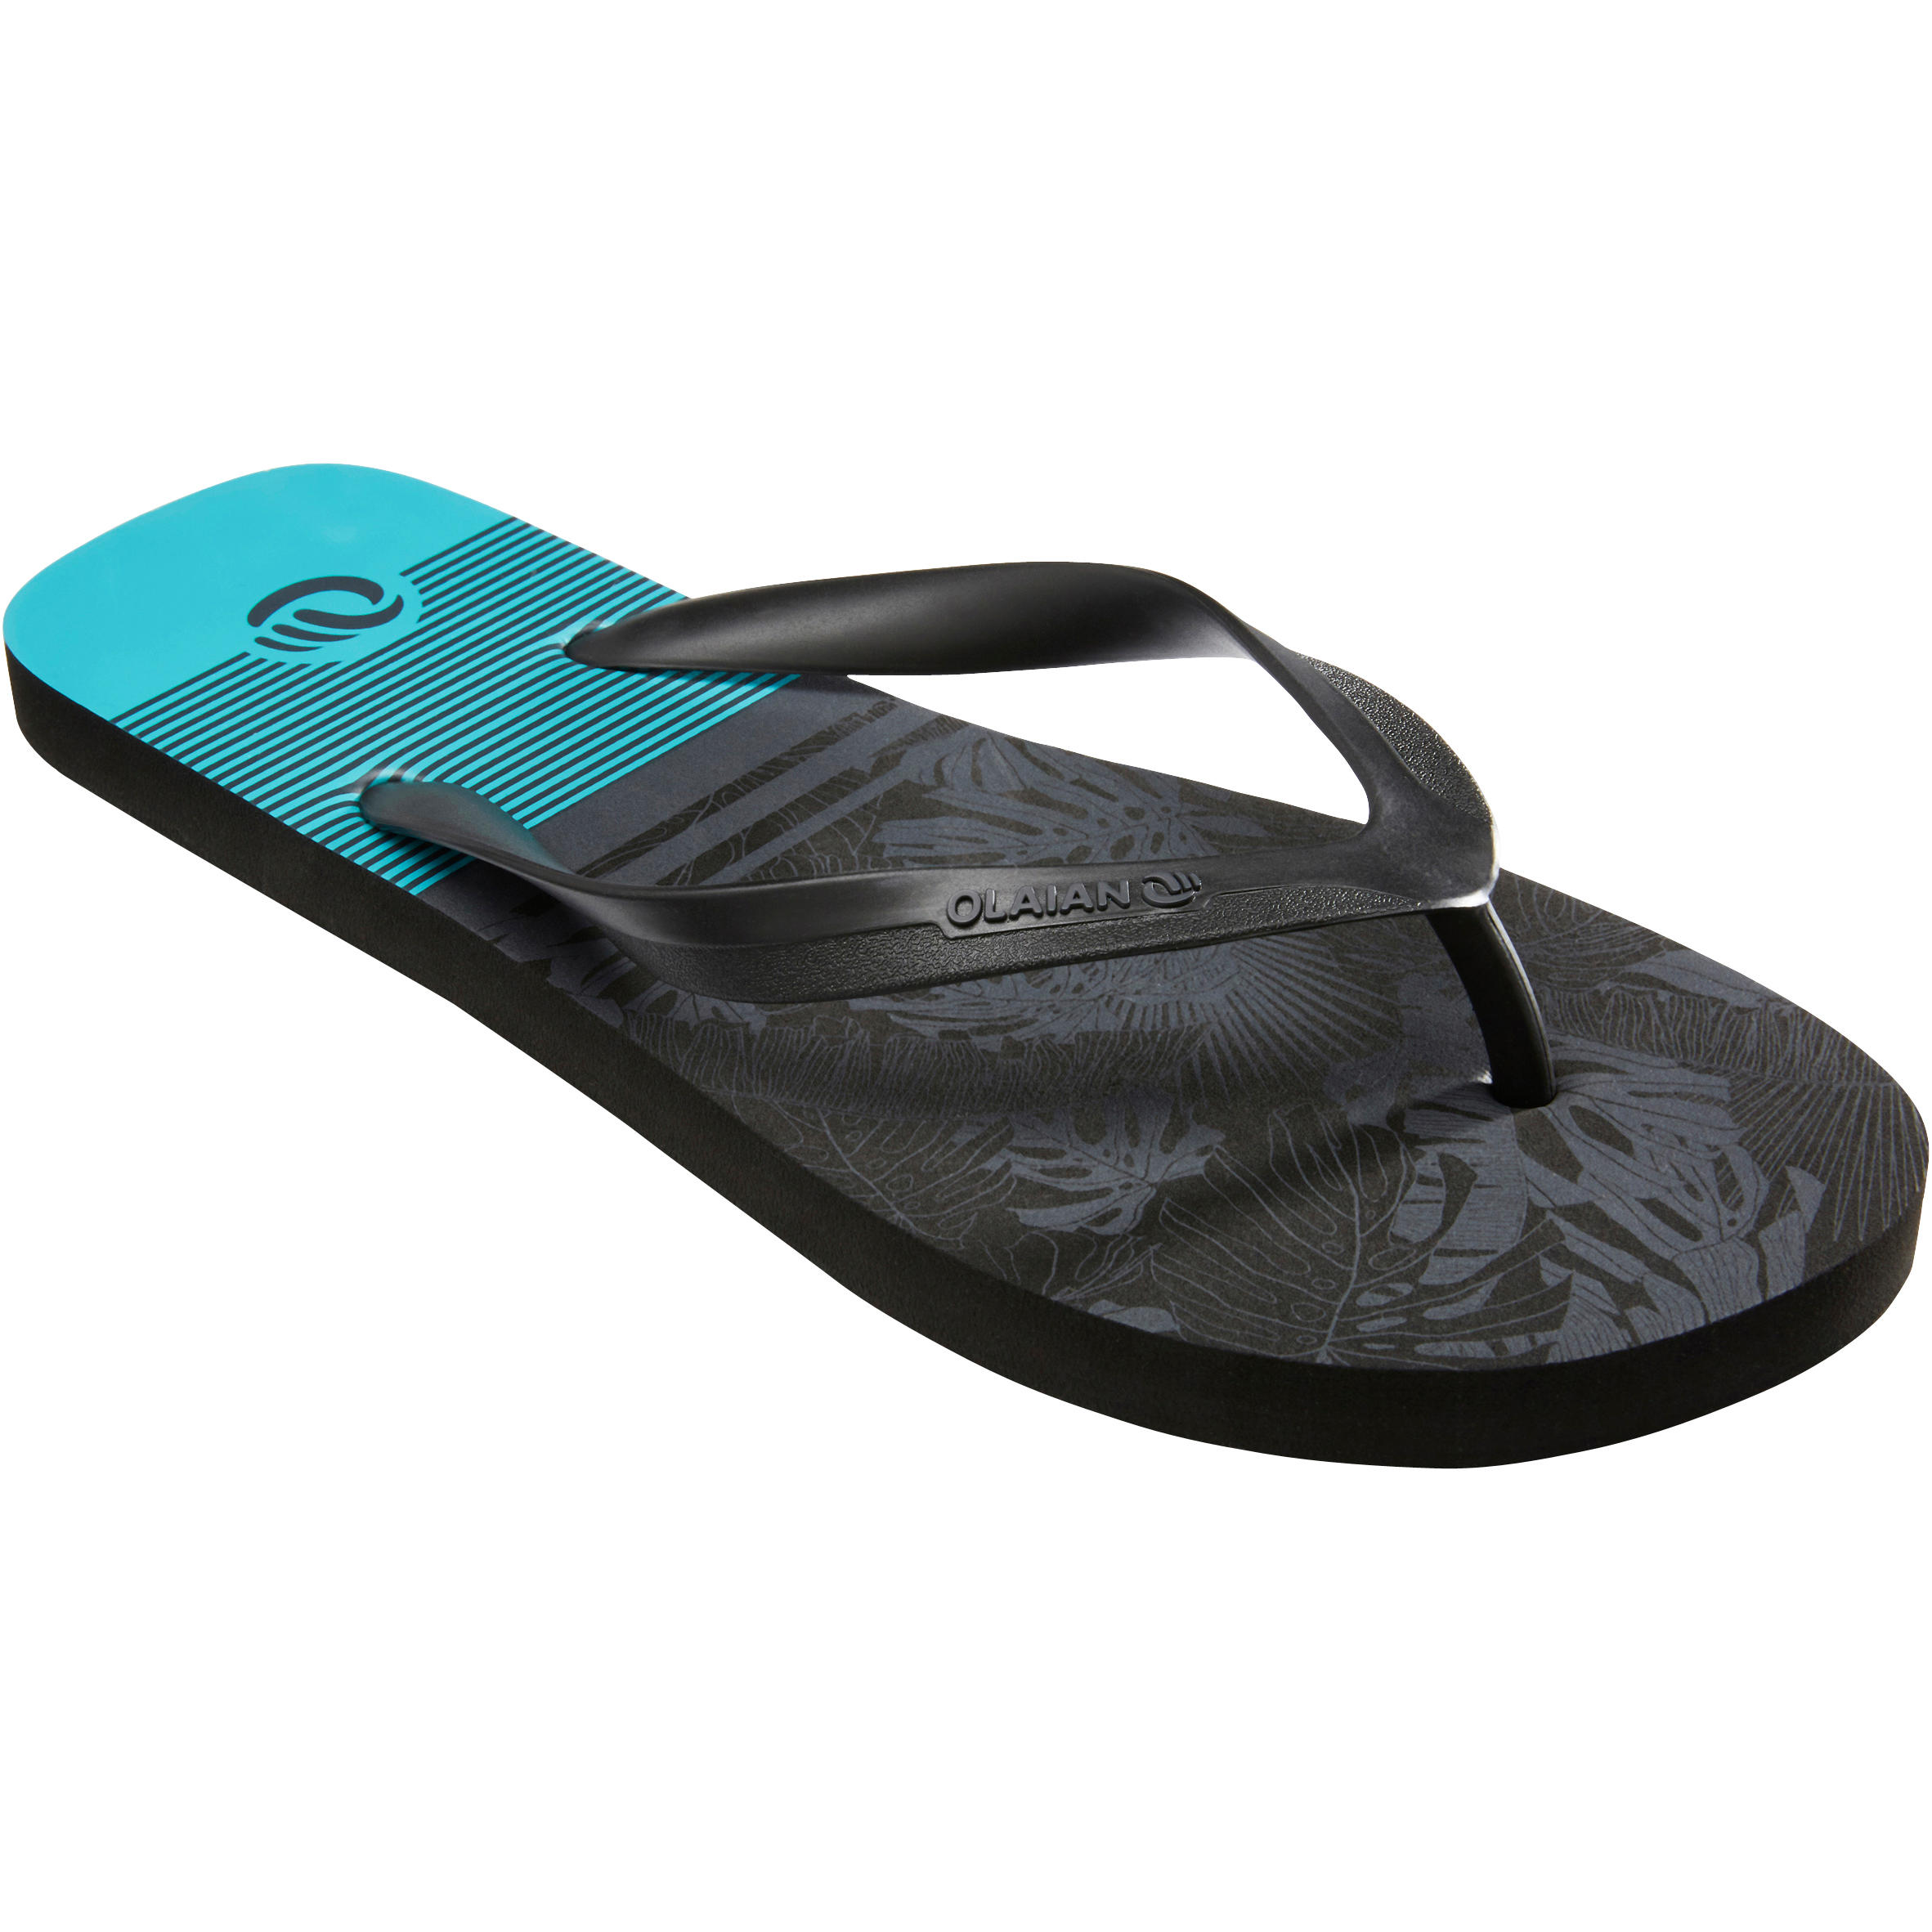 TO 150 M Floral Men's Flip-Flops - Blue